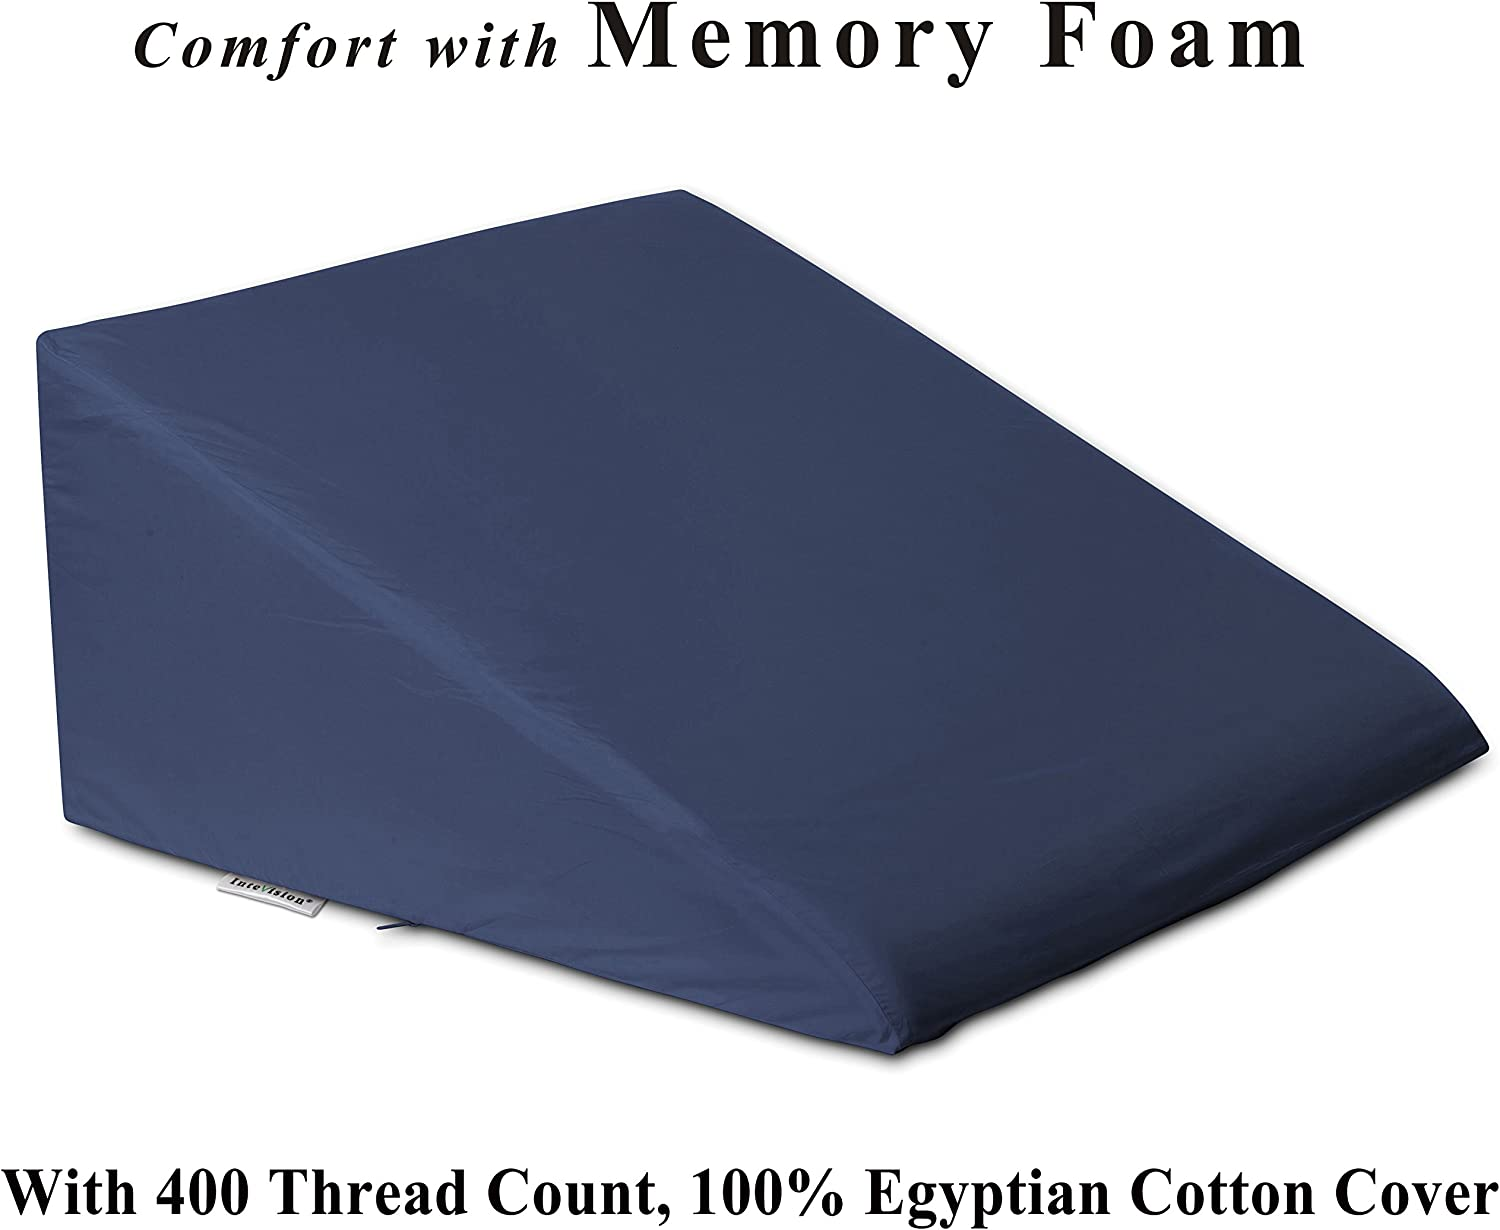 "InteVision Foam Bed Wedge Pillow (25"" x 24"" x 12"") - 2"" Memory Foam Top Layer with Firm Base Foam and a 400 Thread Count, 100% Egyptian Cotton Cover - Helps Relief from Acid Reflux, Post Surgery"